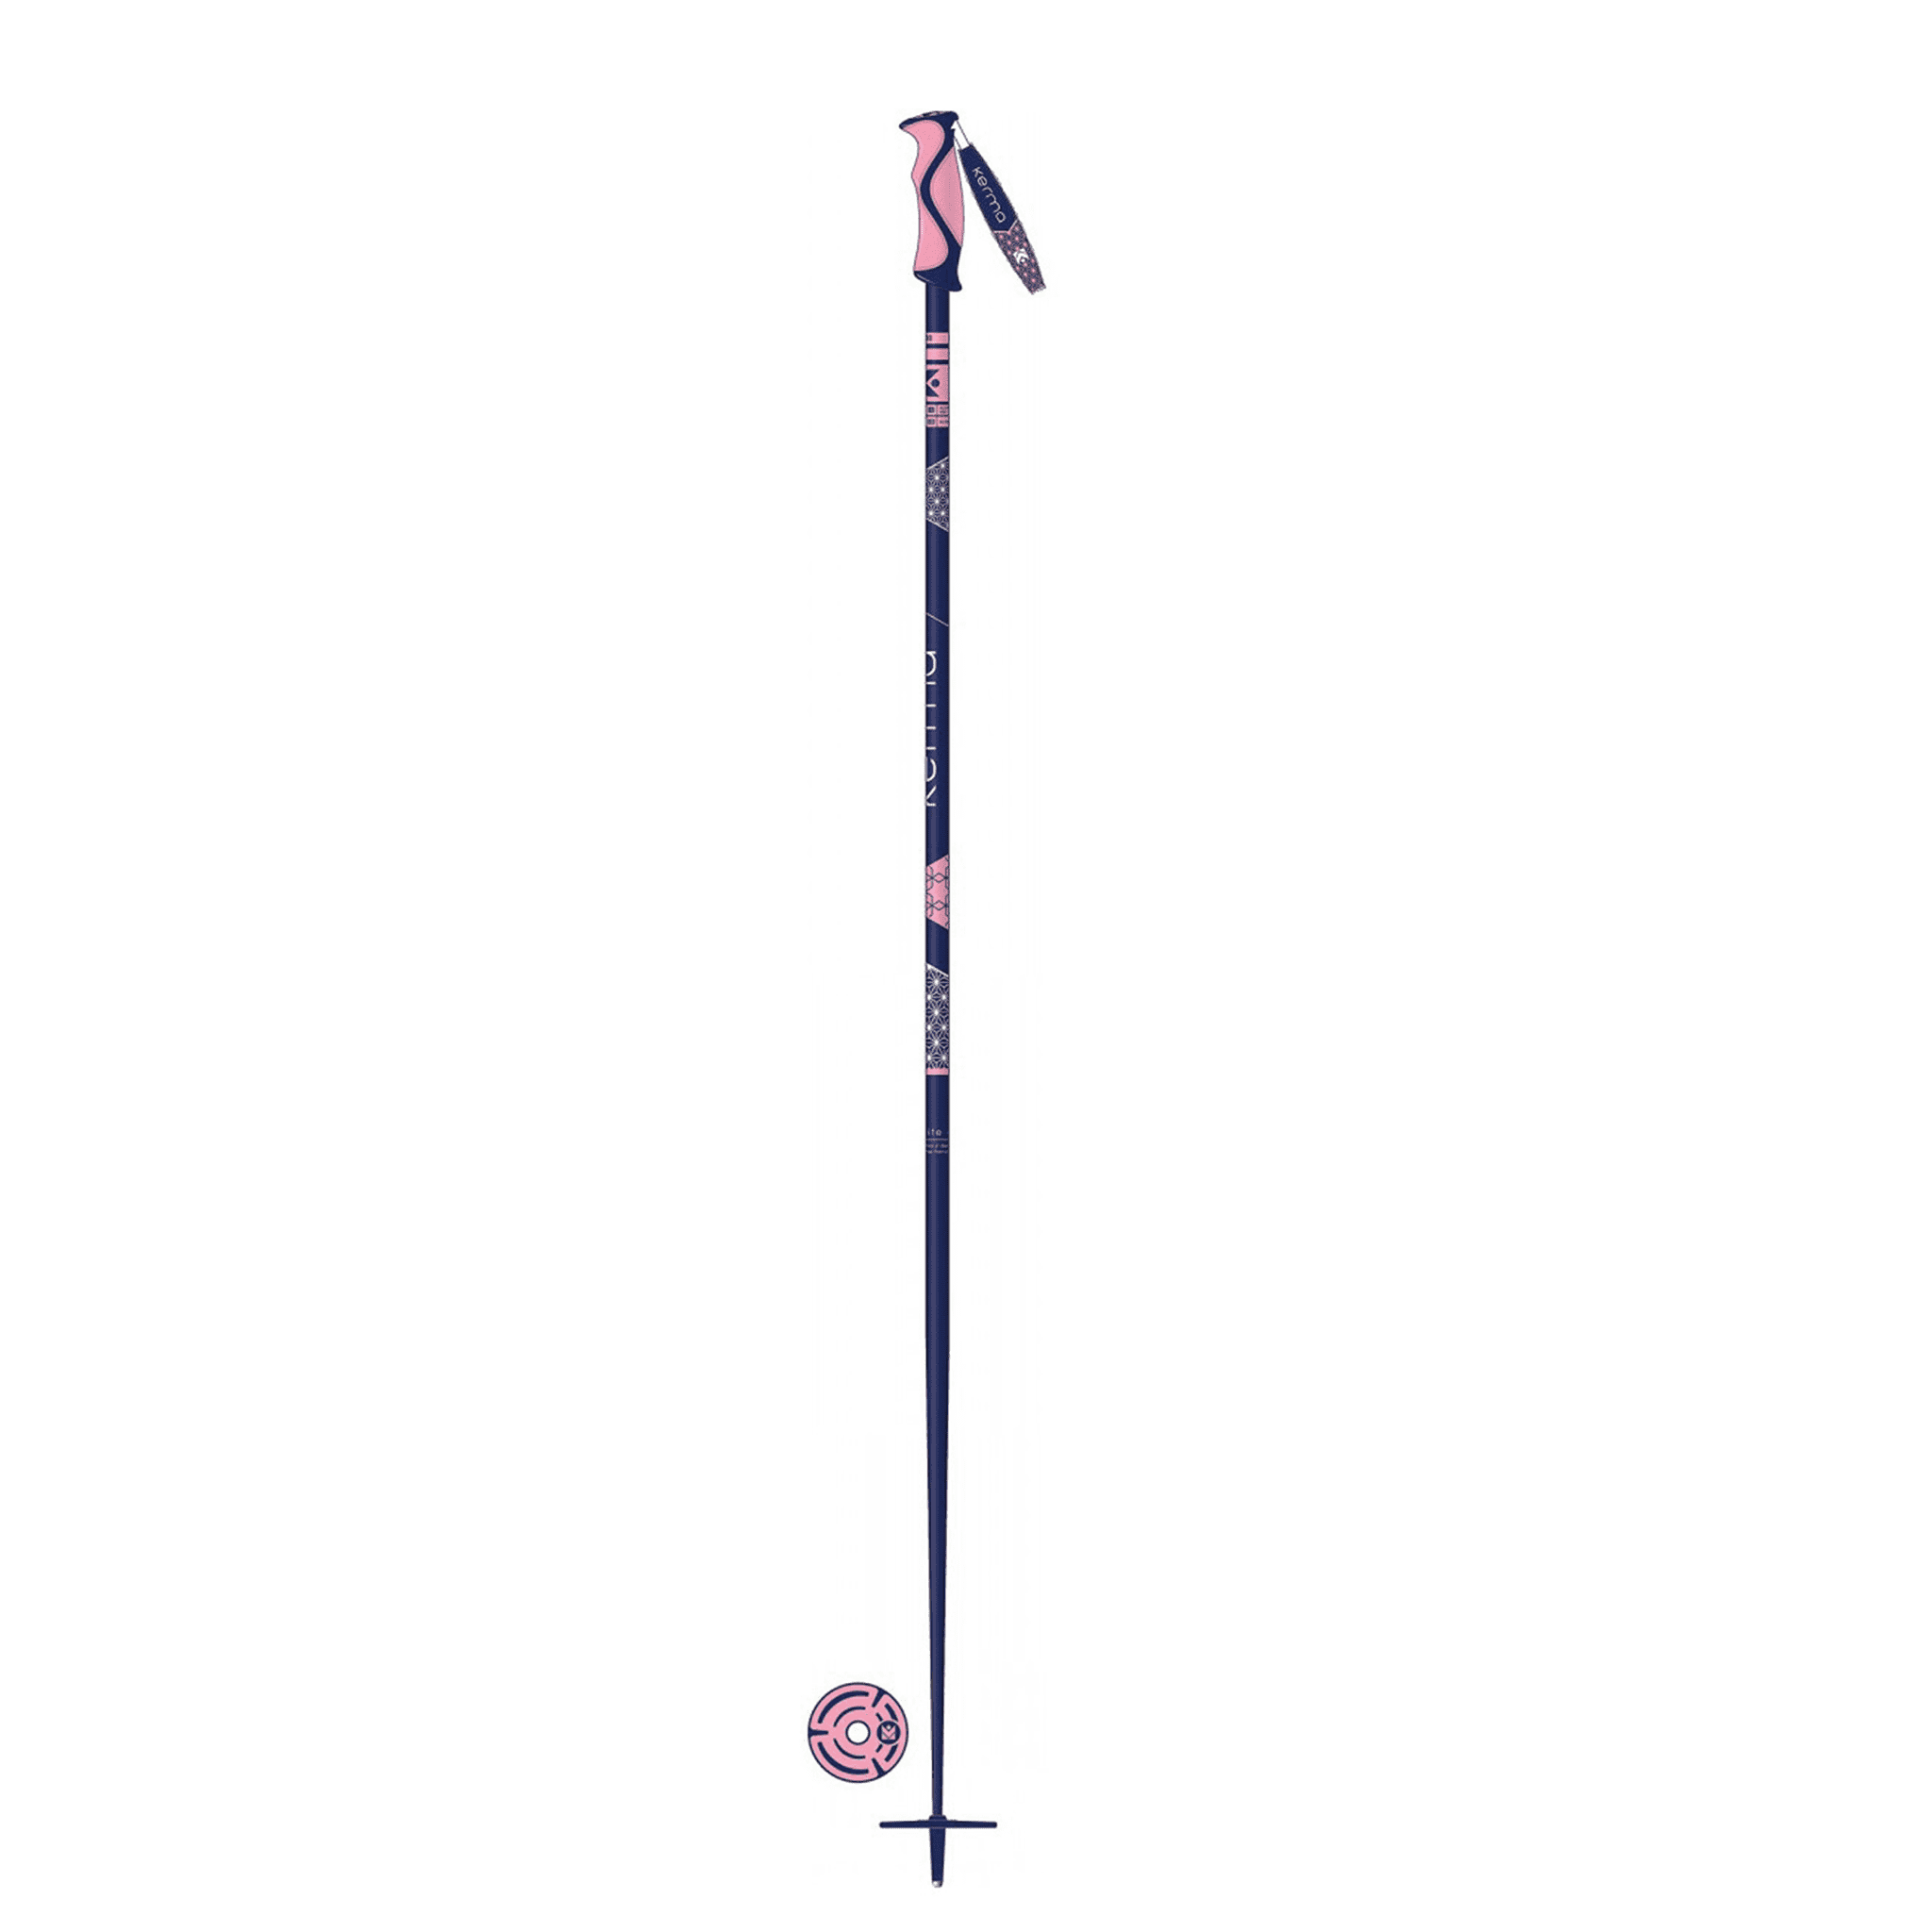 Kerma Elite Aluminium Women's Ski Pole